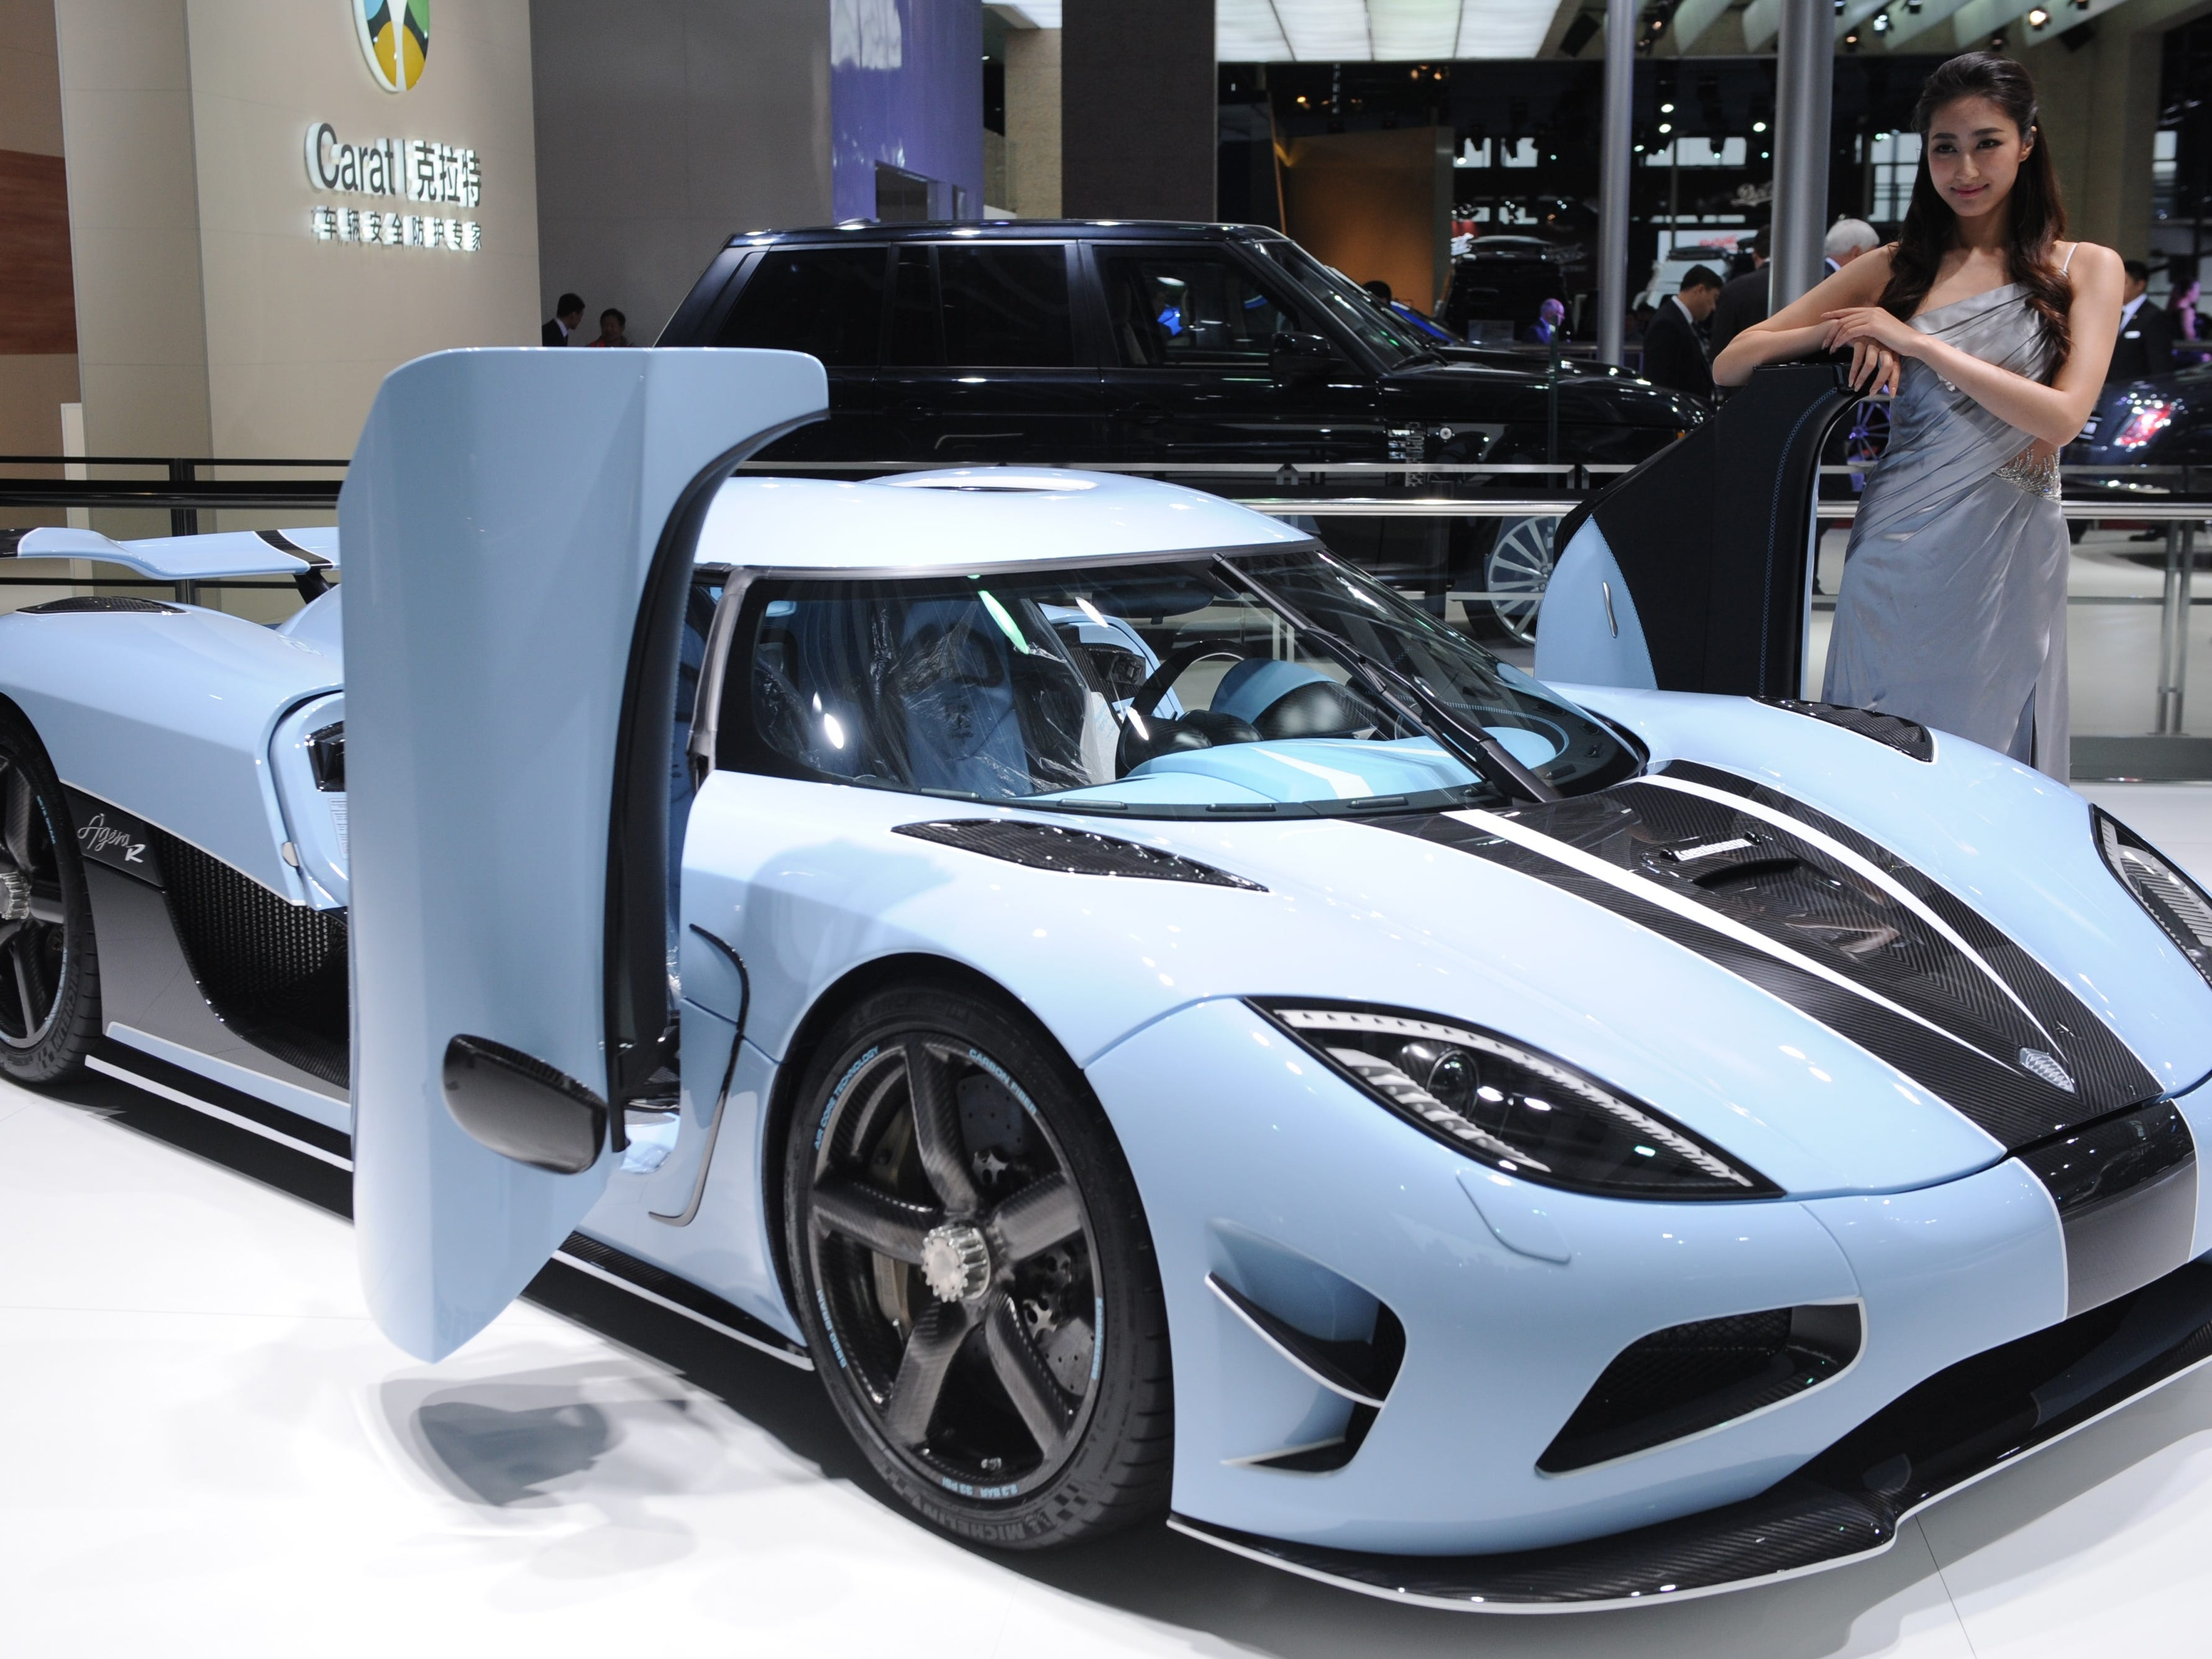 A Koenigsegg sports car is on display during media day at the Shanghai Auto Show in Shanghai, China.